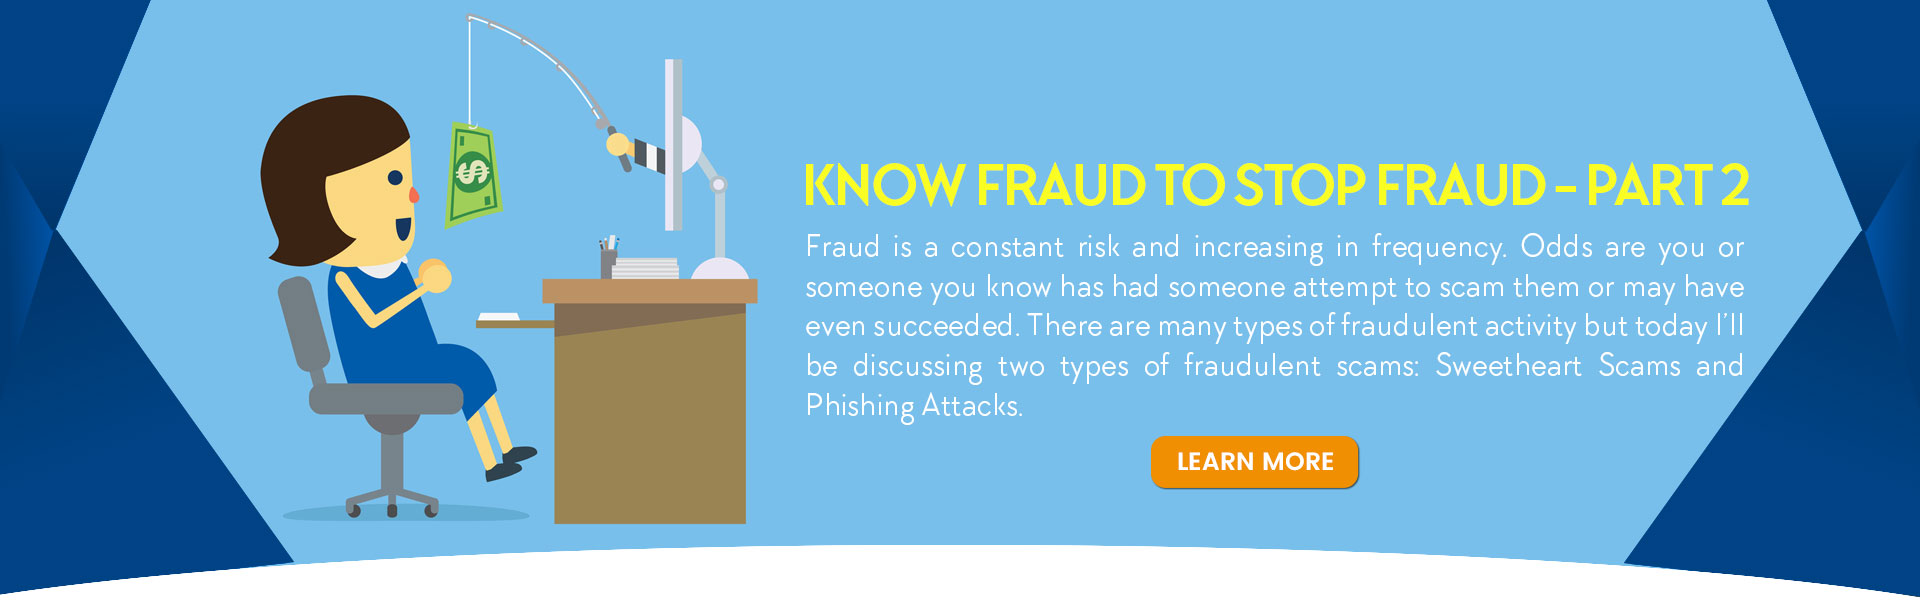 Know Fraud to Stop Fraud